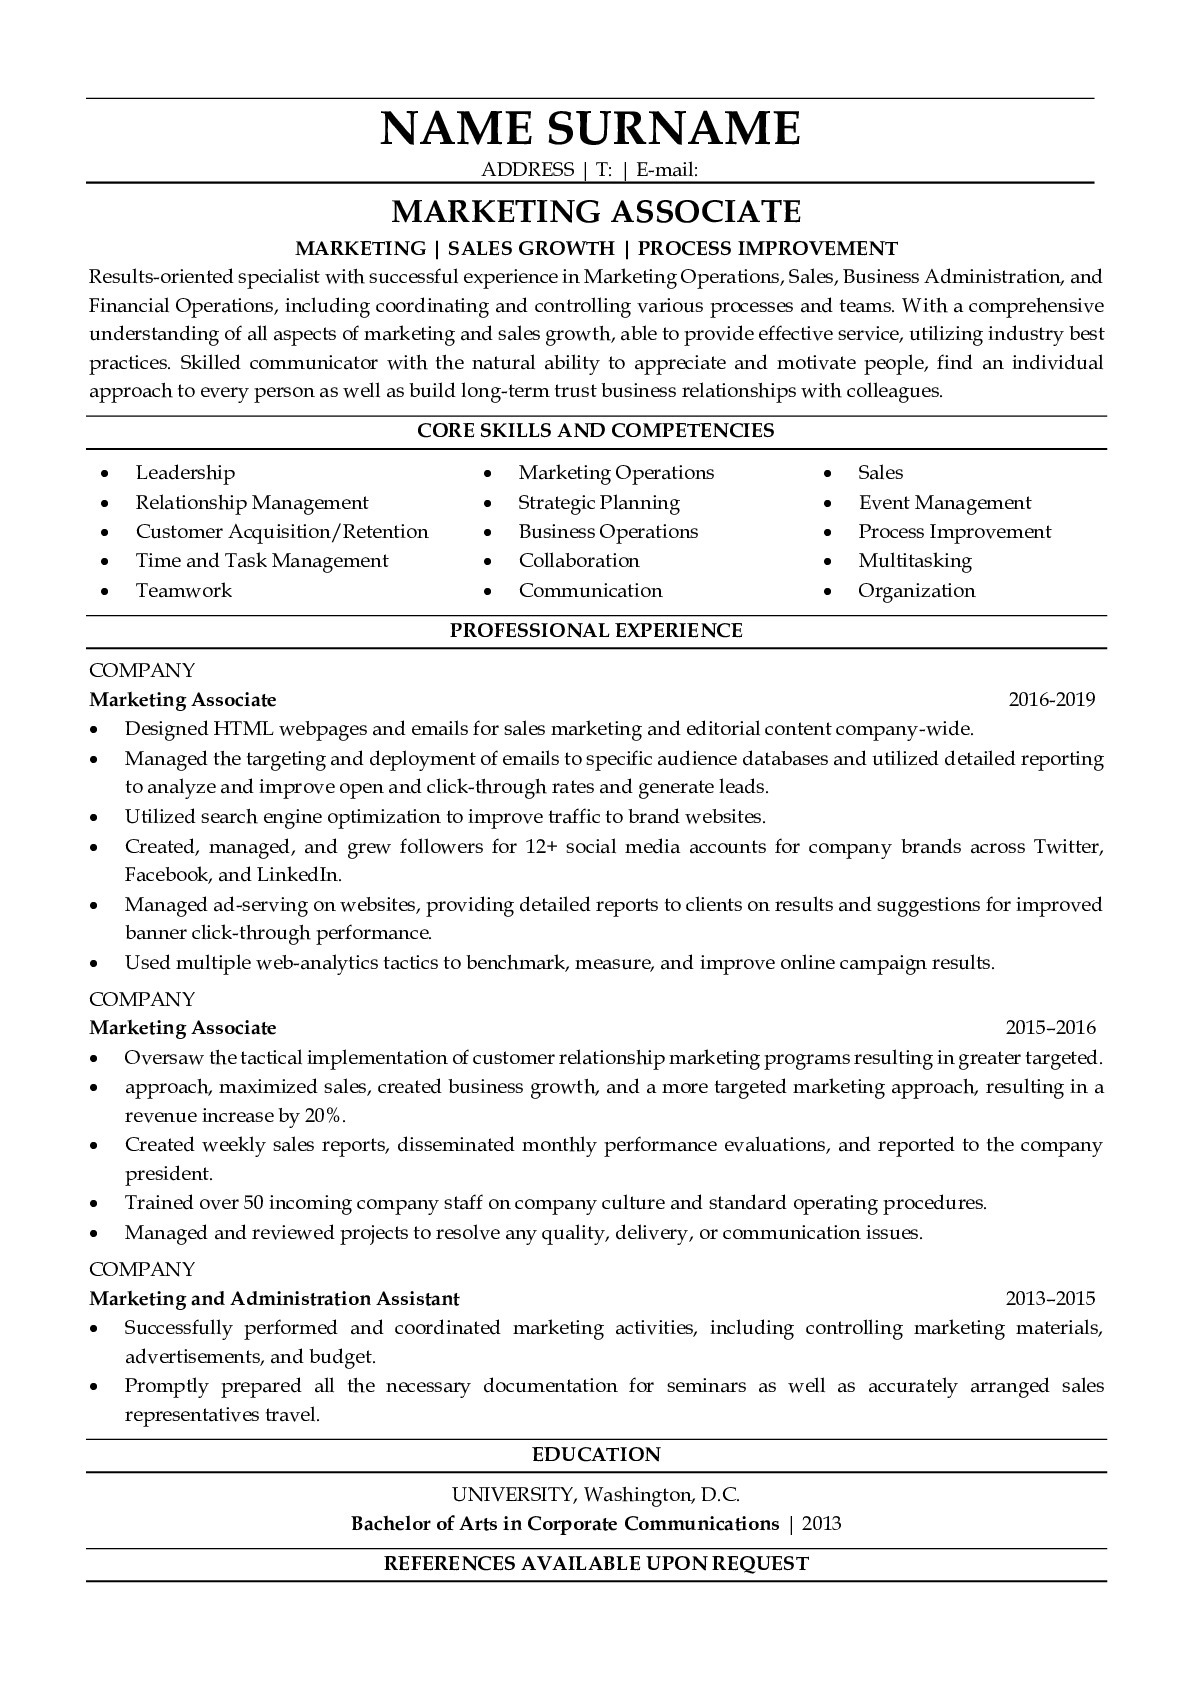 Resume Example for Marketing Associate